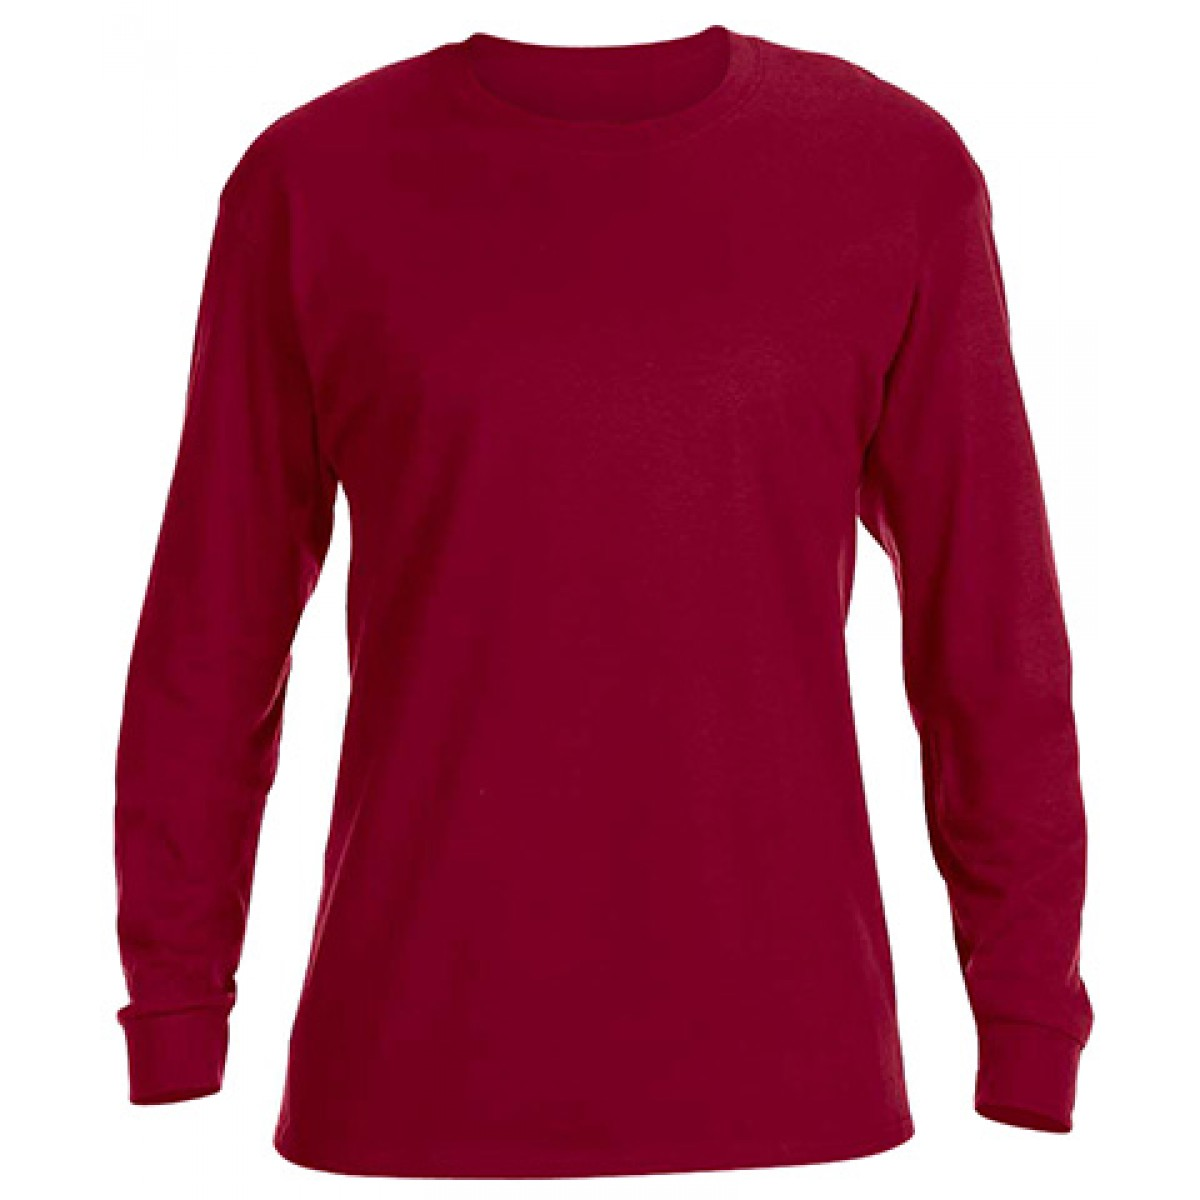 Basic Long Sleeve Crew Neck -Cardinal Red-3XL